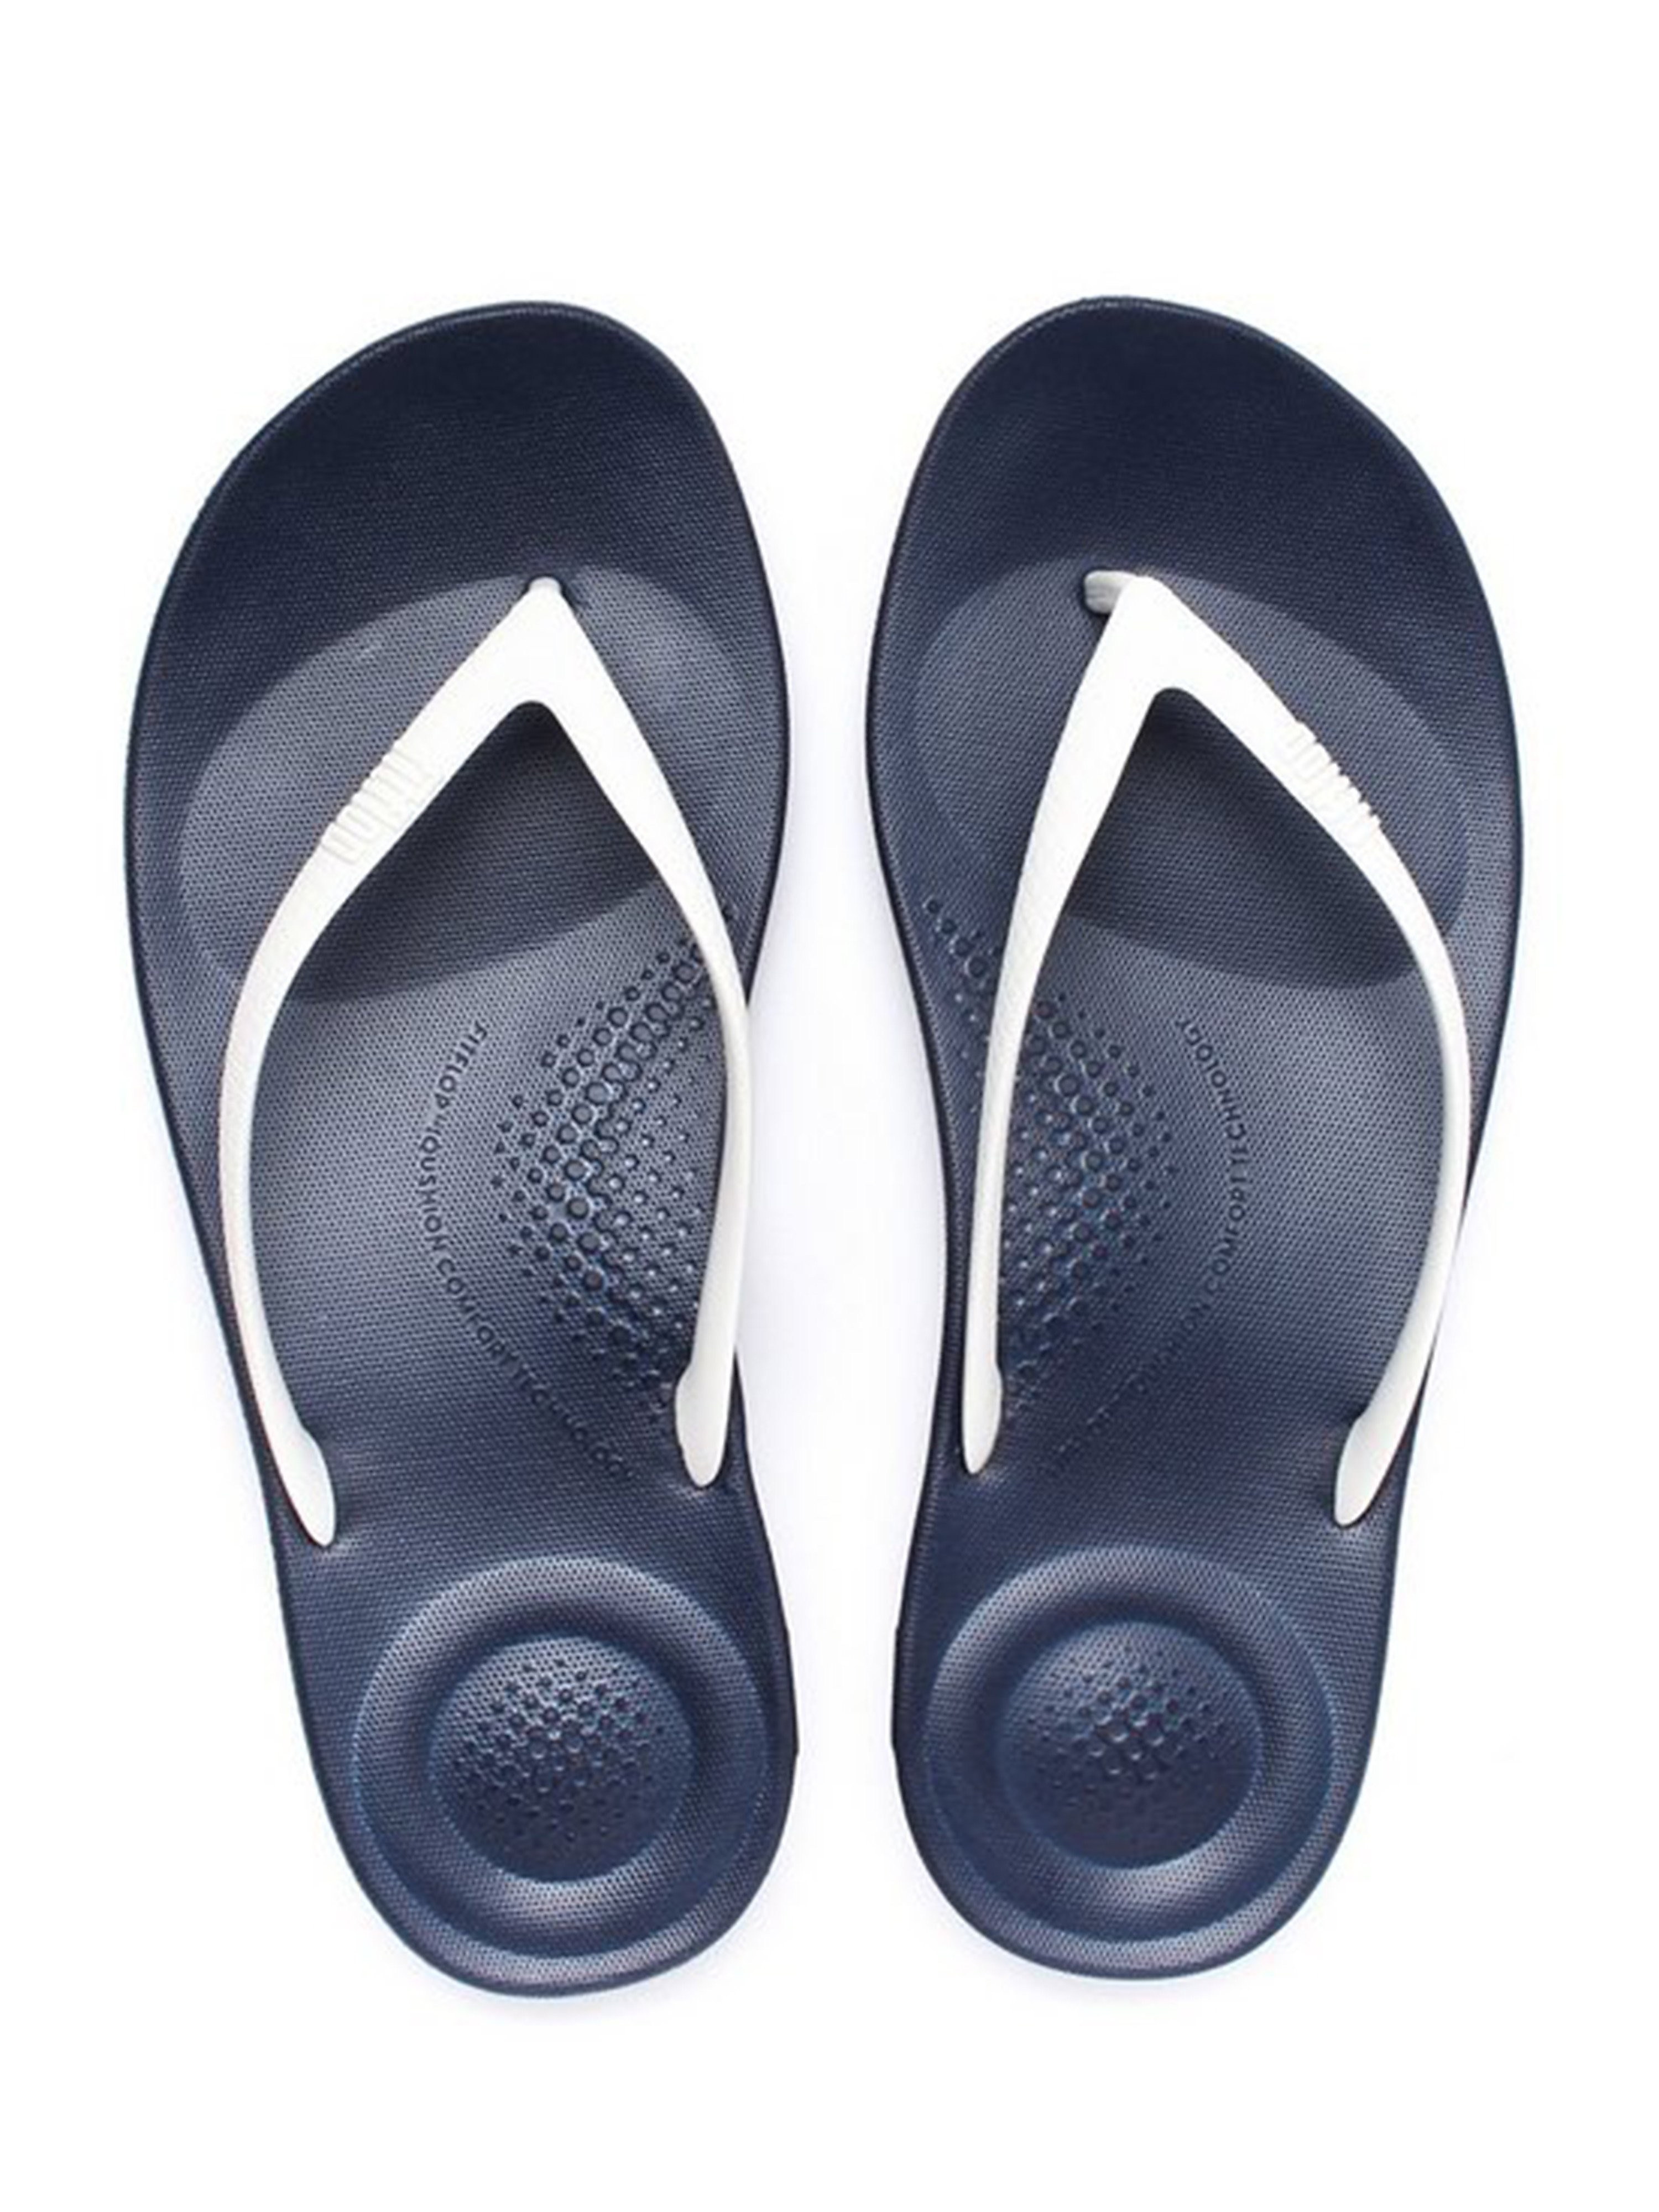 FitFlop FitFlop Women's iQUSHION Ergonomic Flip Flops - Navy/White